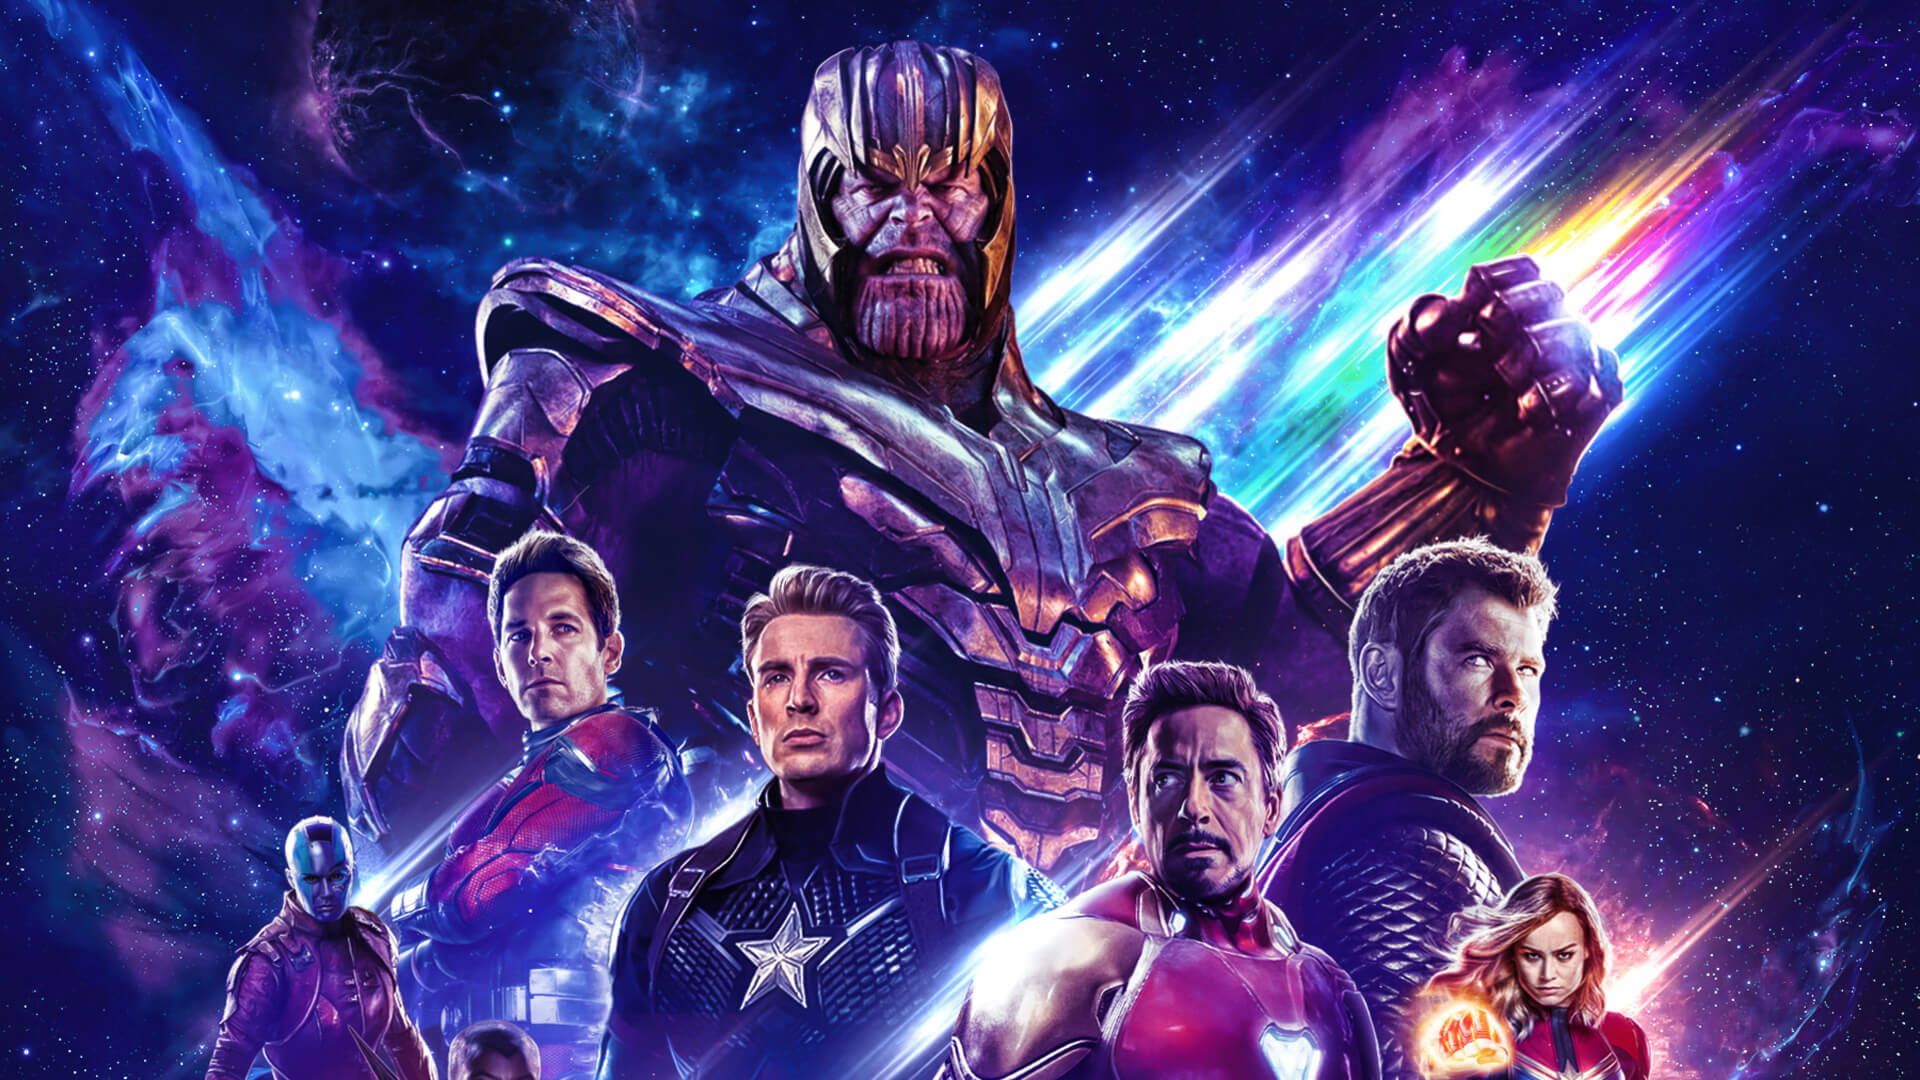 Endgame Avengers 2019 Wallpapers And Background Images Iphone2lovely